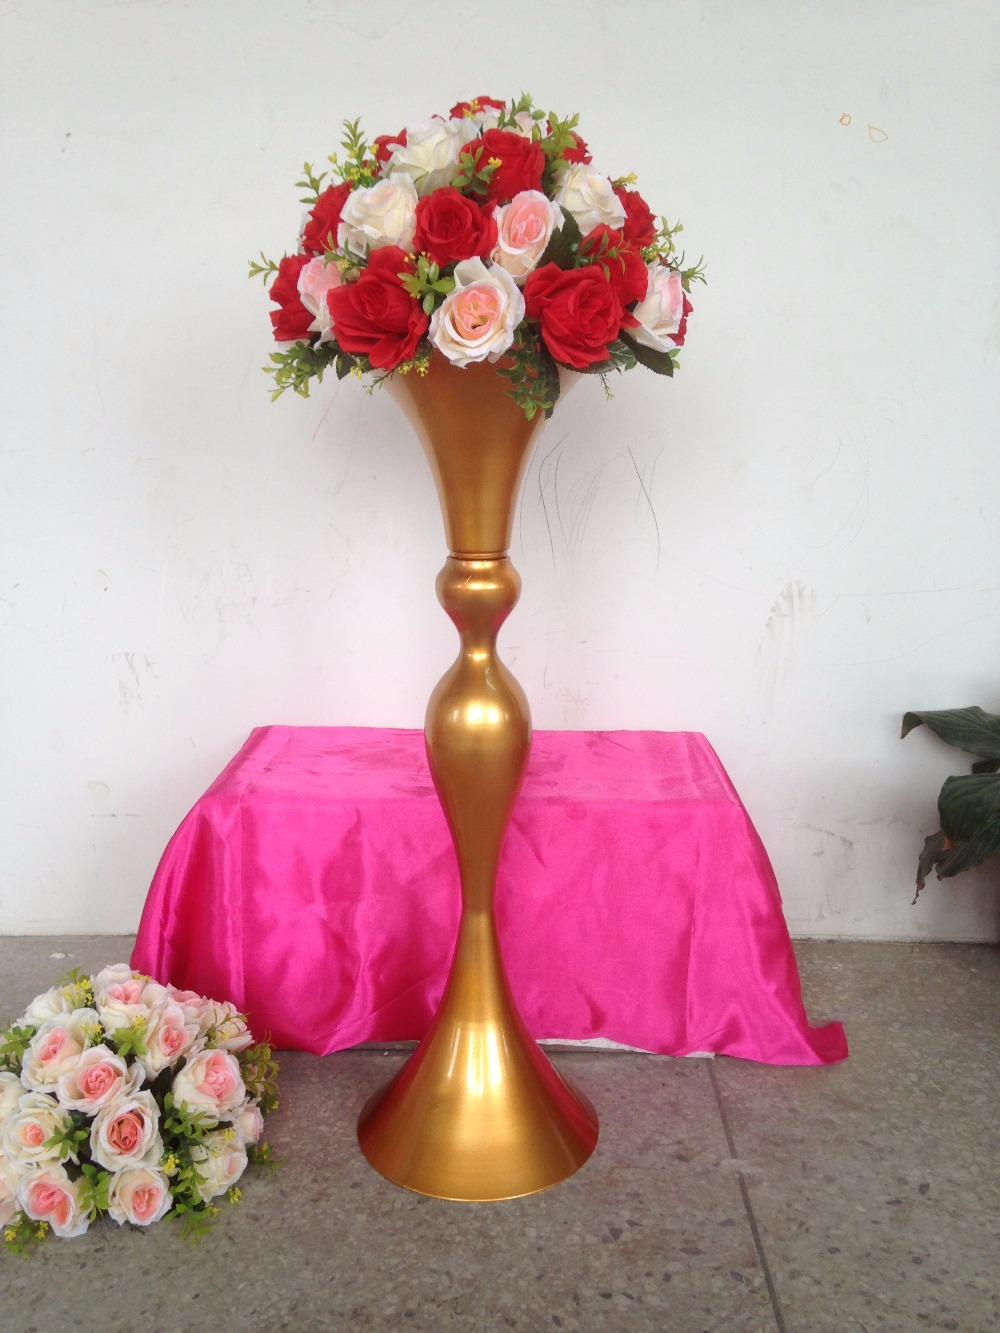 New style 79cm 311 gold wedding flower vase wedding table stand new style 79cm 311 gold wedding flower vase wedding table stand wedding decoration wedding road leads 10 pcslot in vases from home garden on izmirmasajfo Images